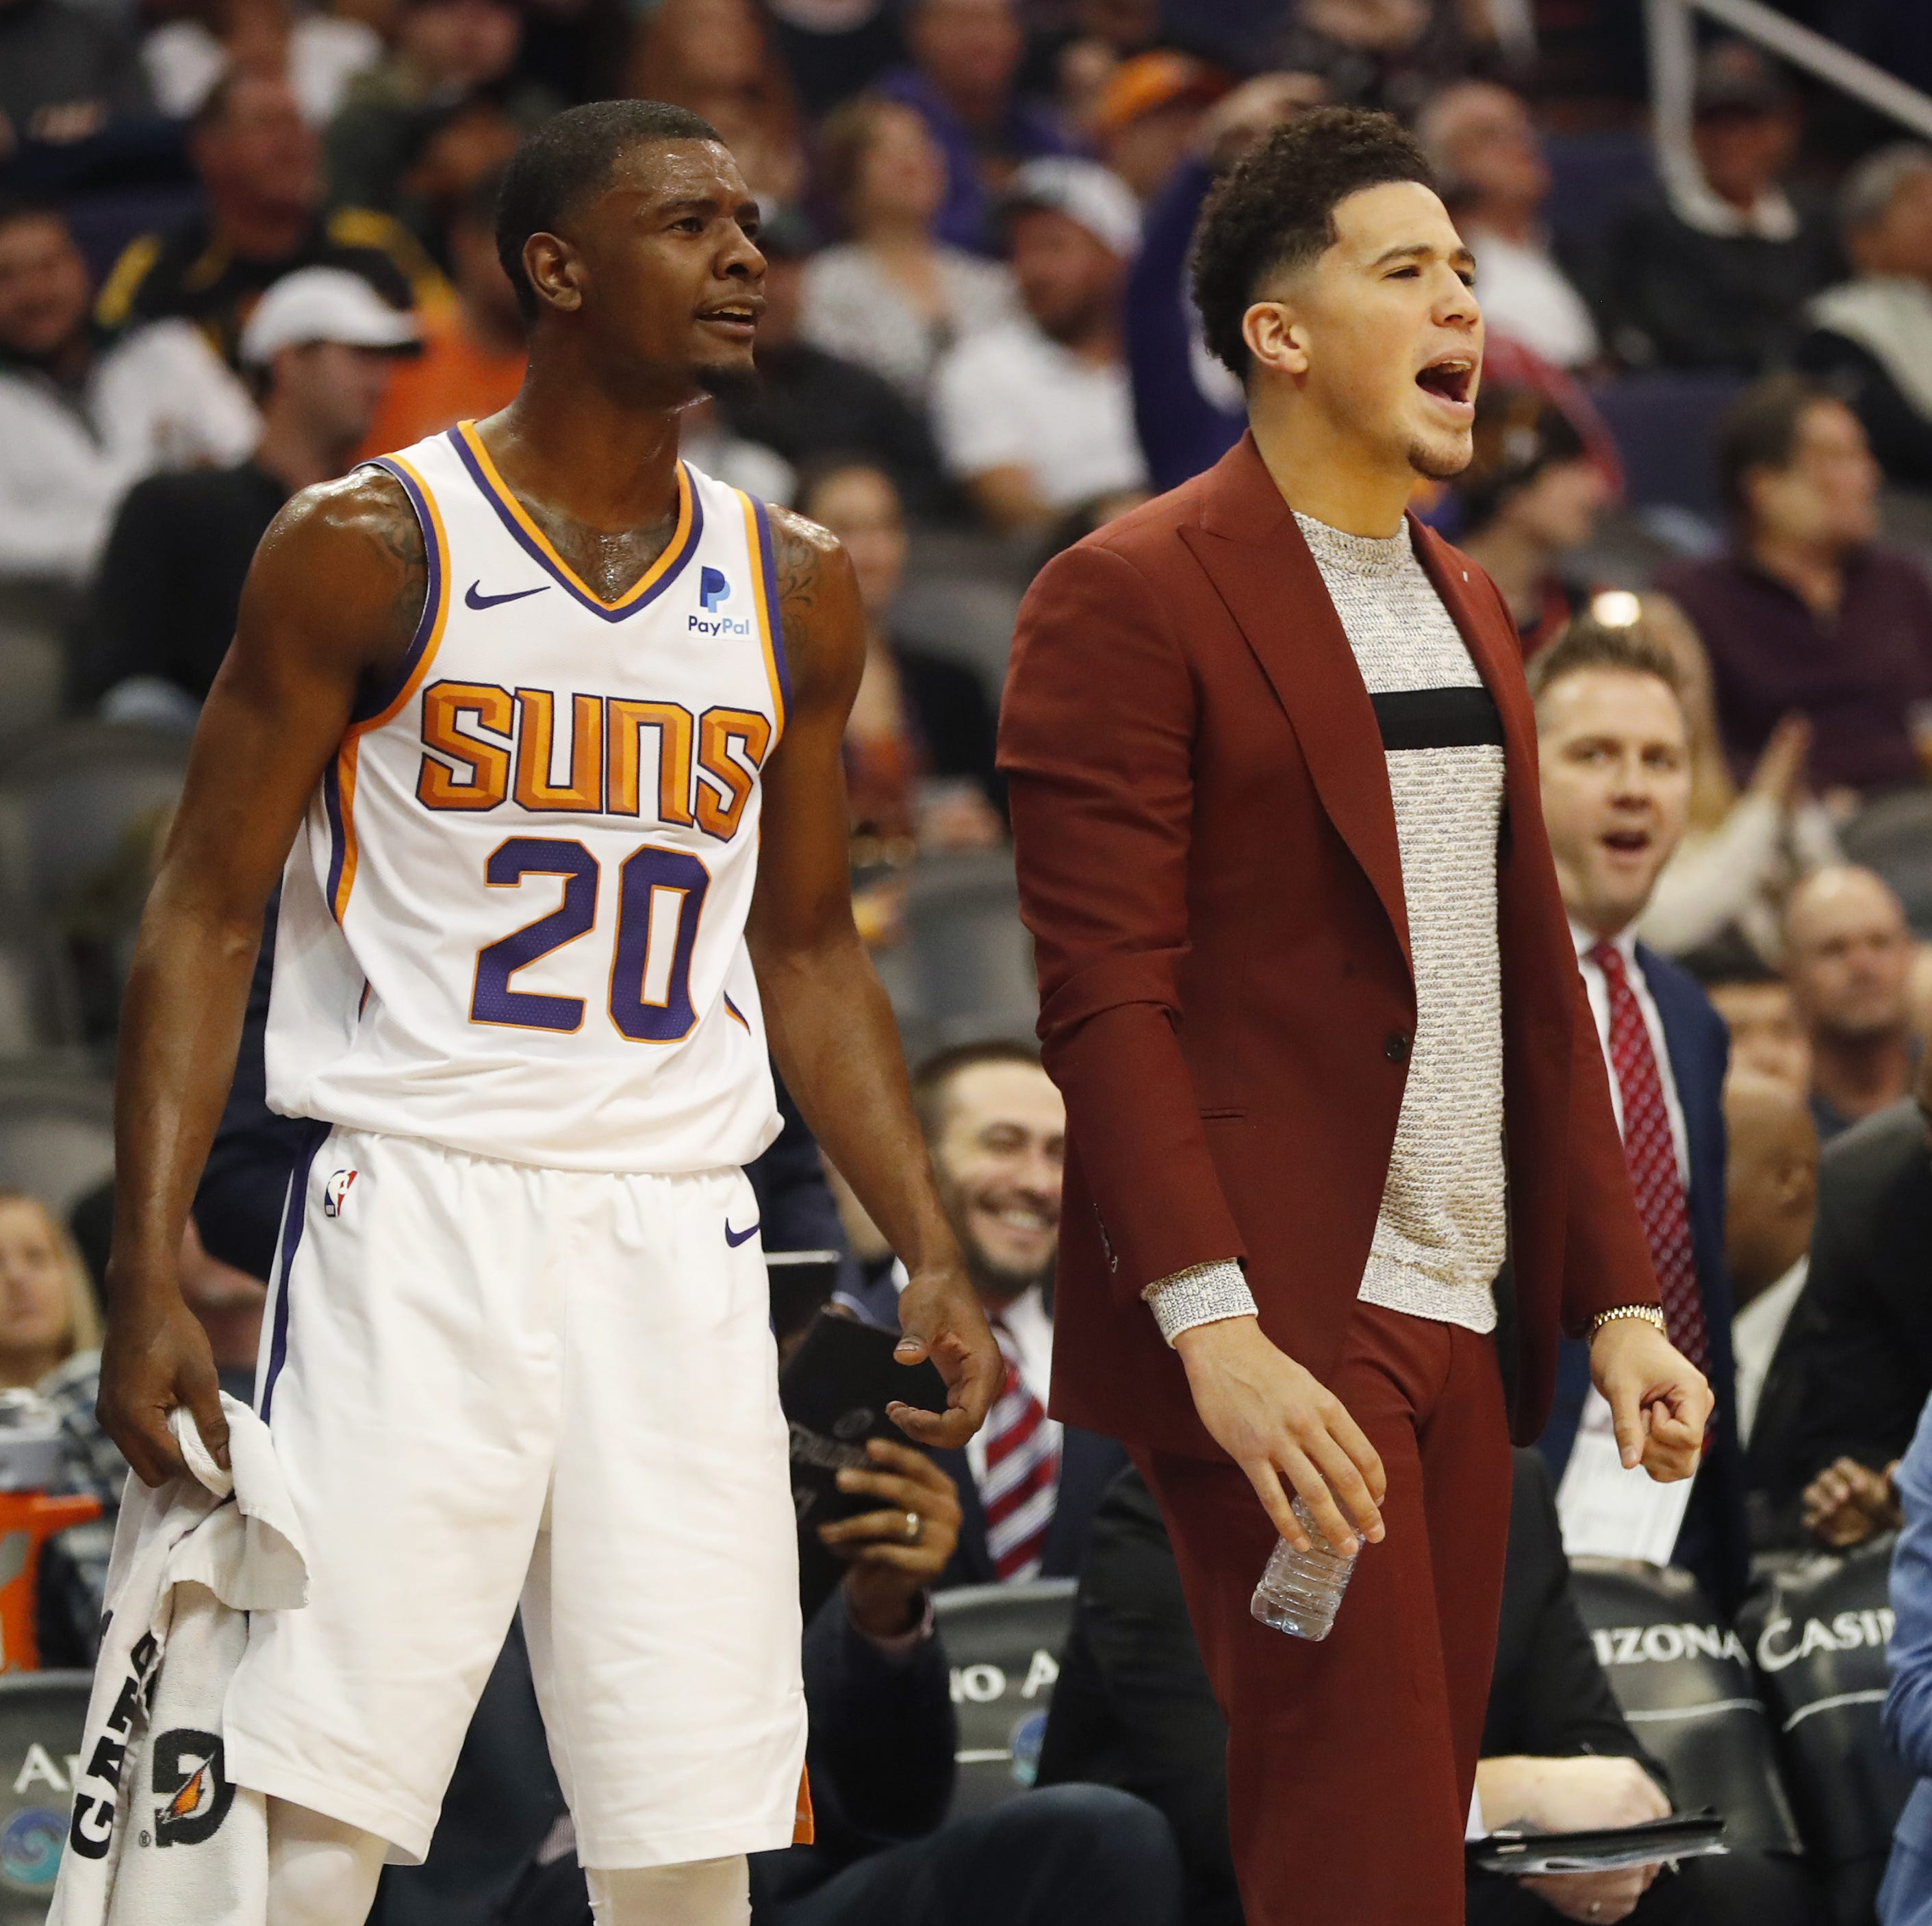 'There's a very good chance' Suns' Devin Booker will play against Timberwolves